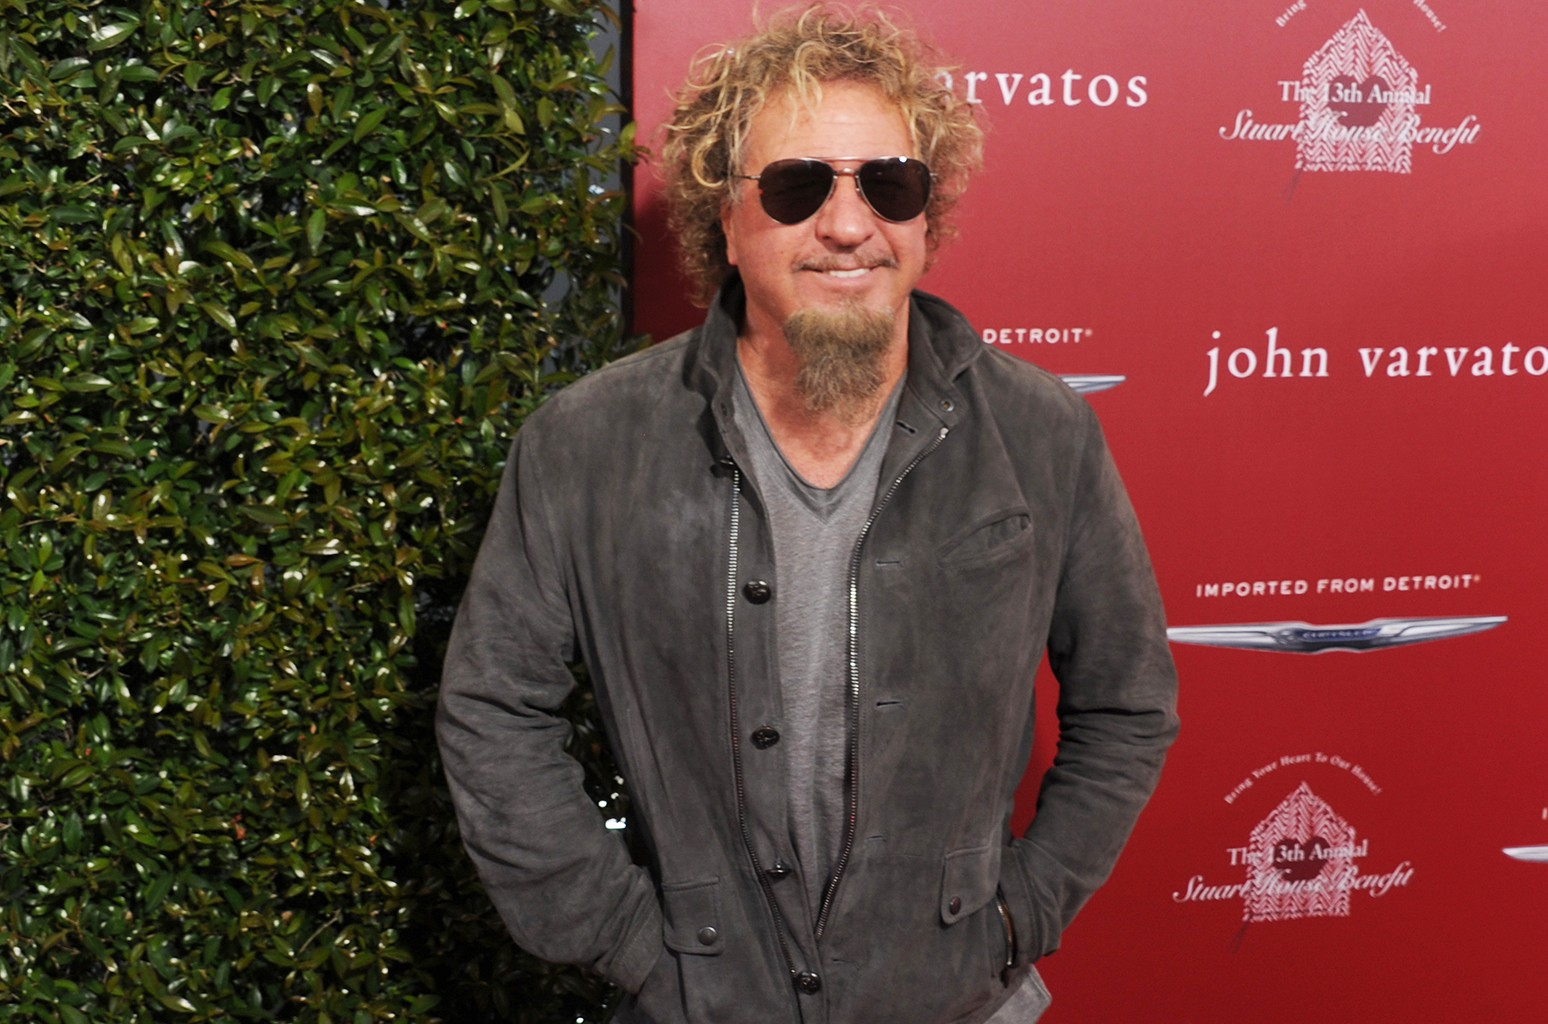 Sammy Hagar arrives at the 13th Annual Stuart House Benefit at John Varvatos on April 17, 2016 in Los Angeles.